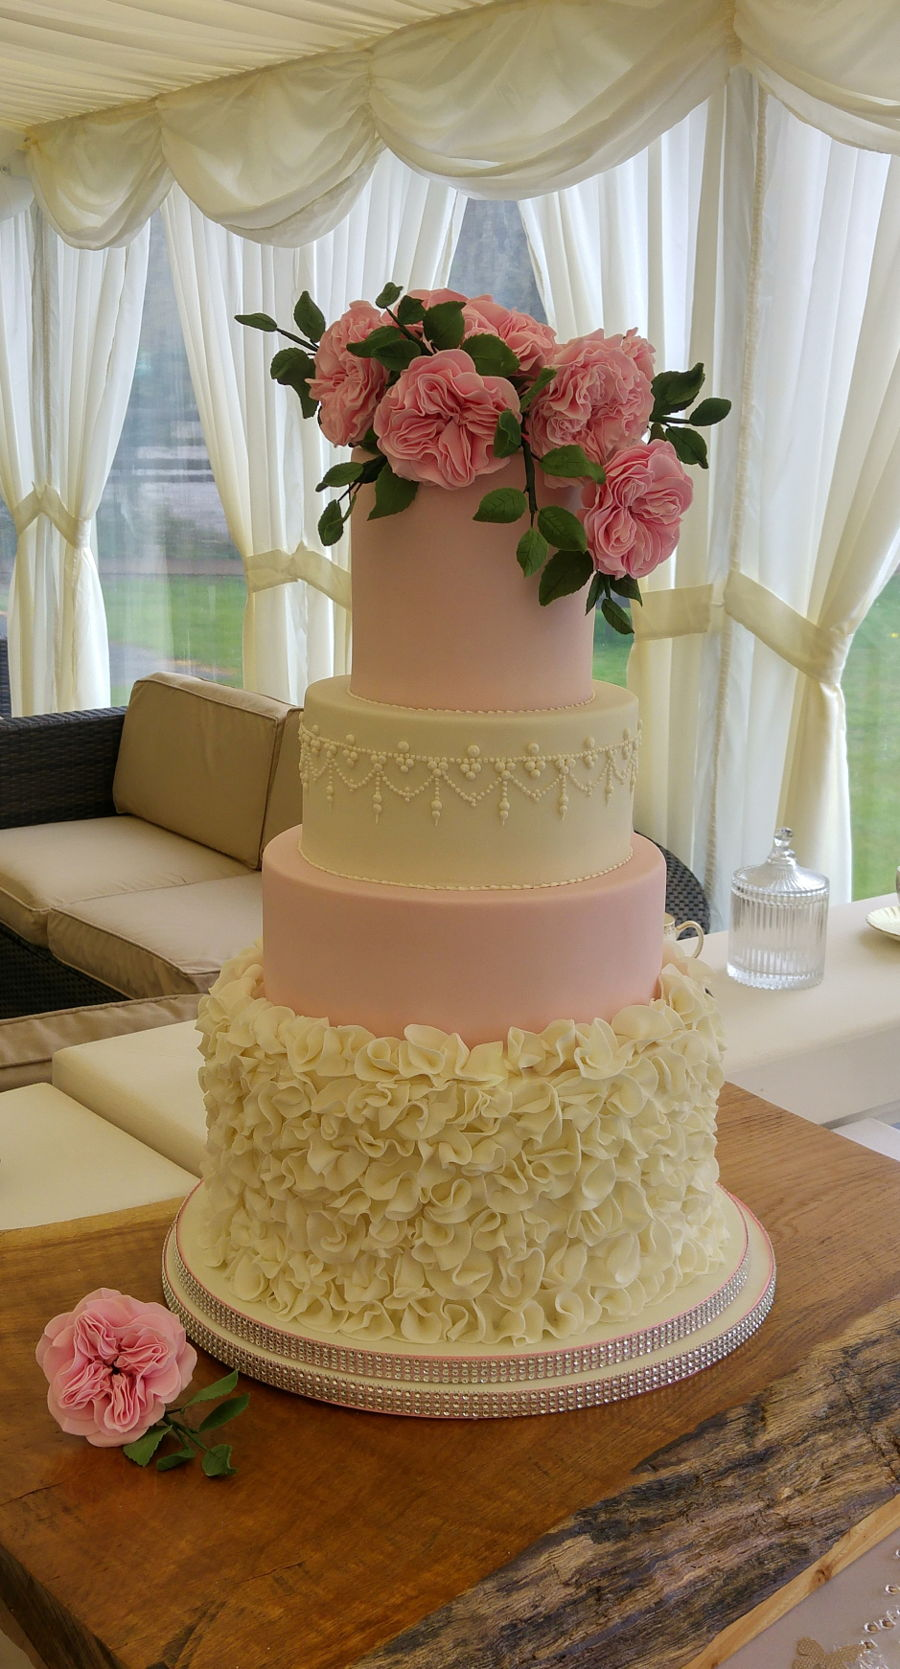 wedding cakes with ruffles and roses ruffles and david roses wedding cake cakecentral 26113